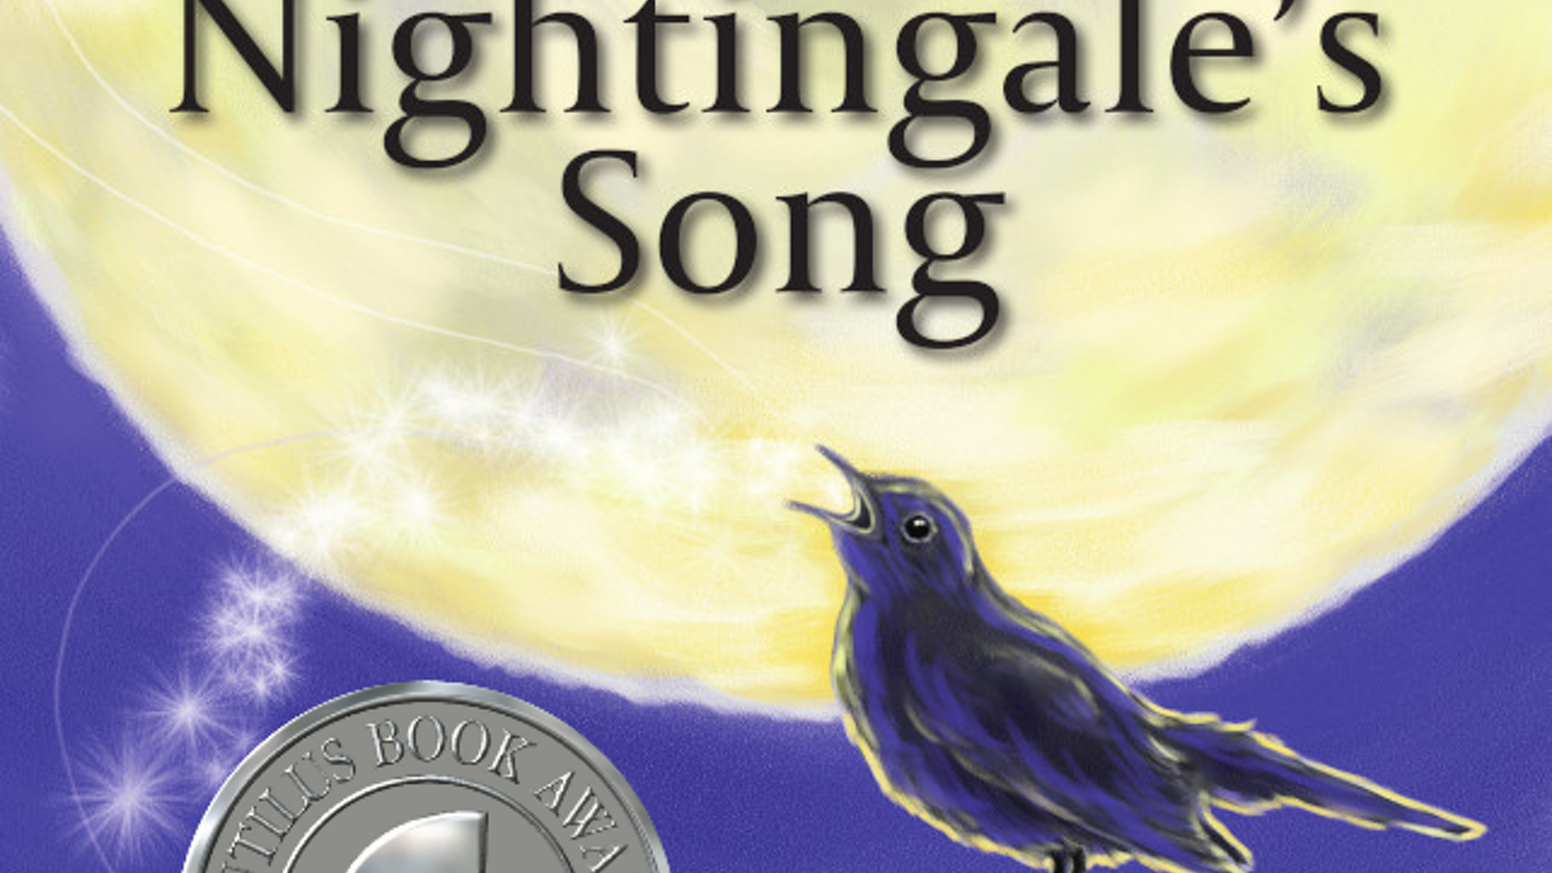 A HUGE thank you for funding the reprint of my 2018 picture book, The Nightingale's Song, a picture book about the power of Unity in Diversity!